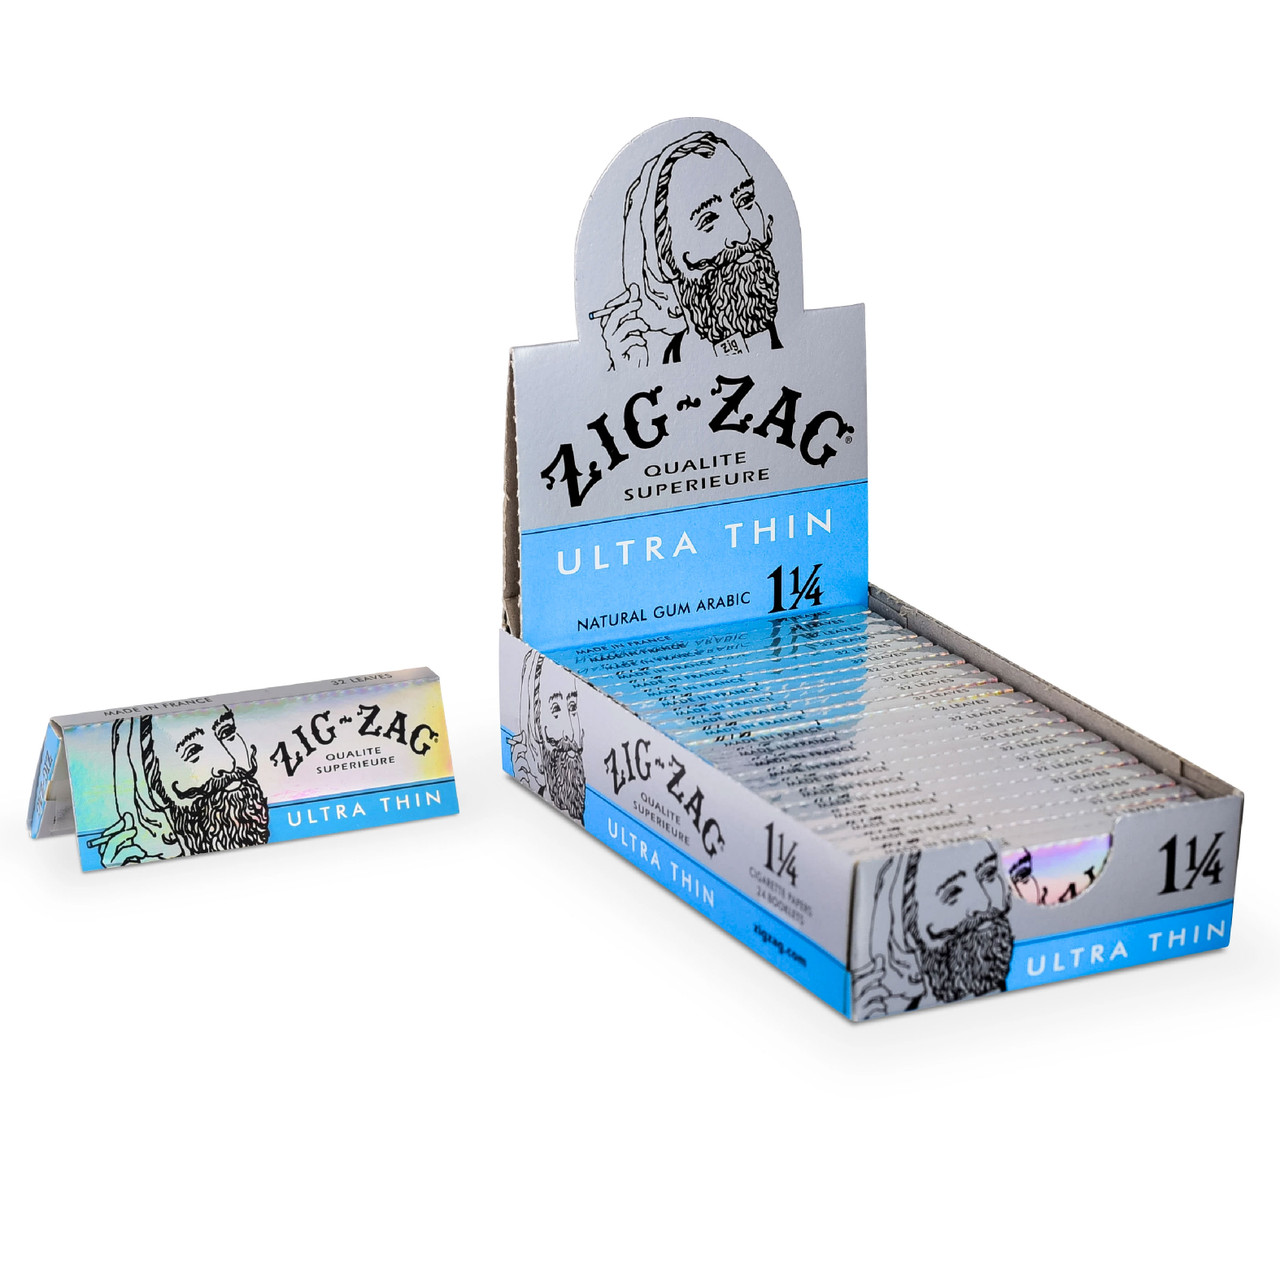 Zig Zag Ultra Thin 1 1/4 rolling papers box